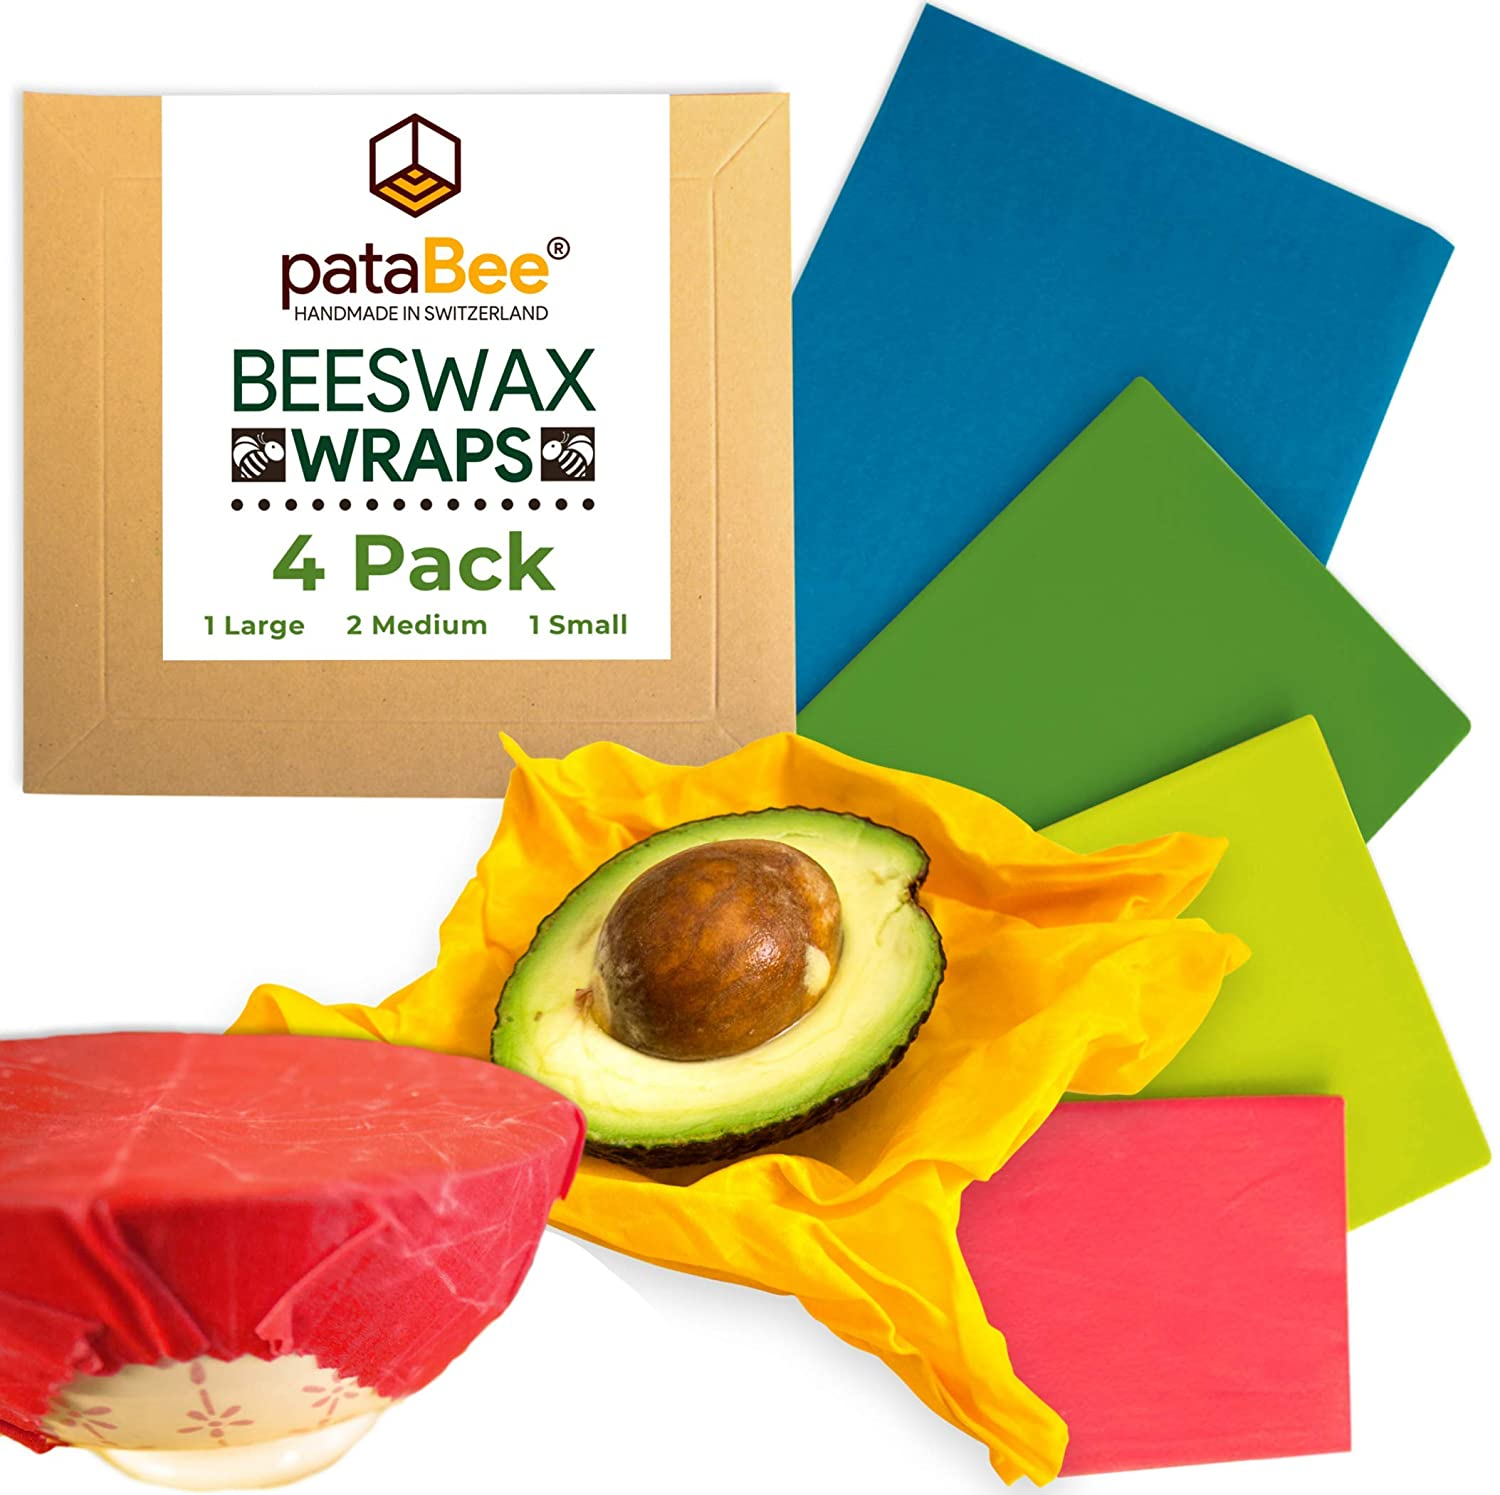 Beeswax Wrap Reusable Food Wrap - Handmade in Switzerland - PataBee Reduce  Plastic to Zero Waste - Organic, Sustainable,Eco-Friendly and Biodegradable